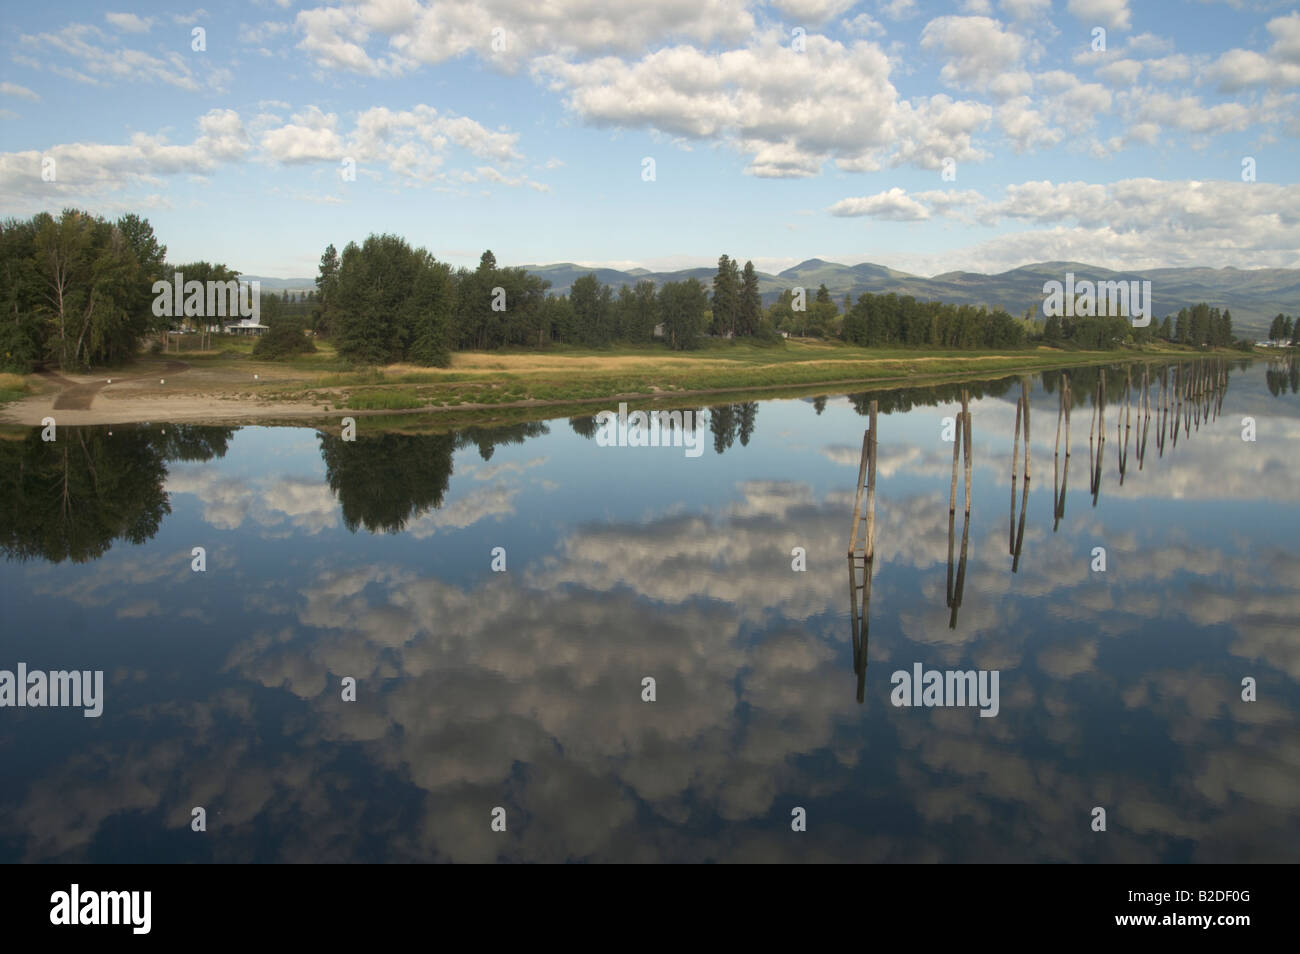 Pend Oreille River Columbia Washington Idaho United States British Columbia There are five dams on the Pend Oreille - Stock Image